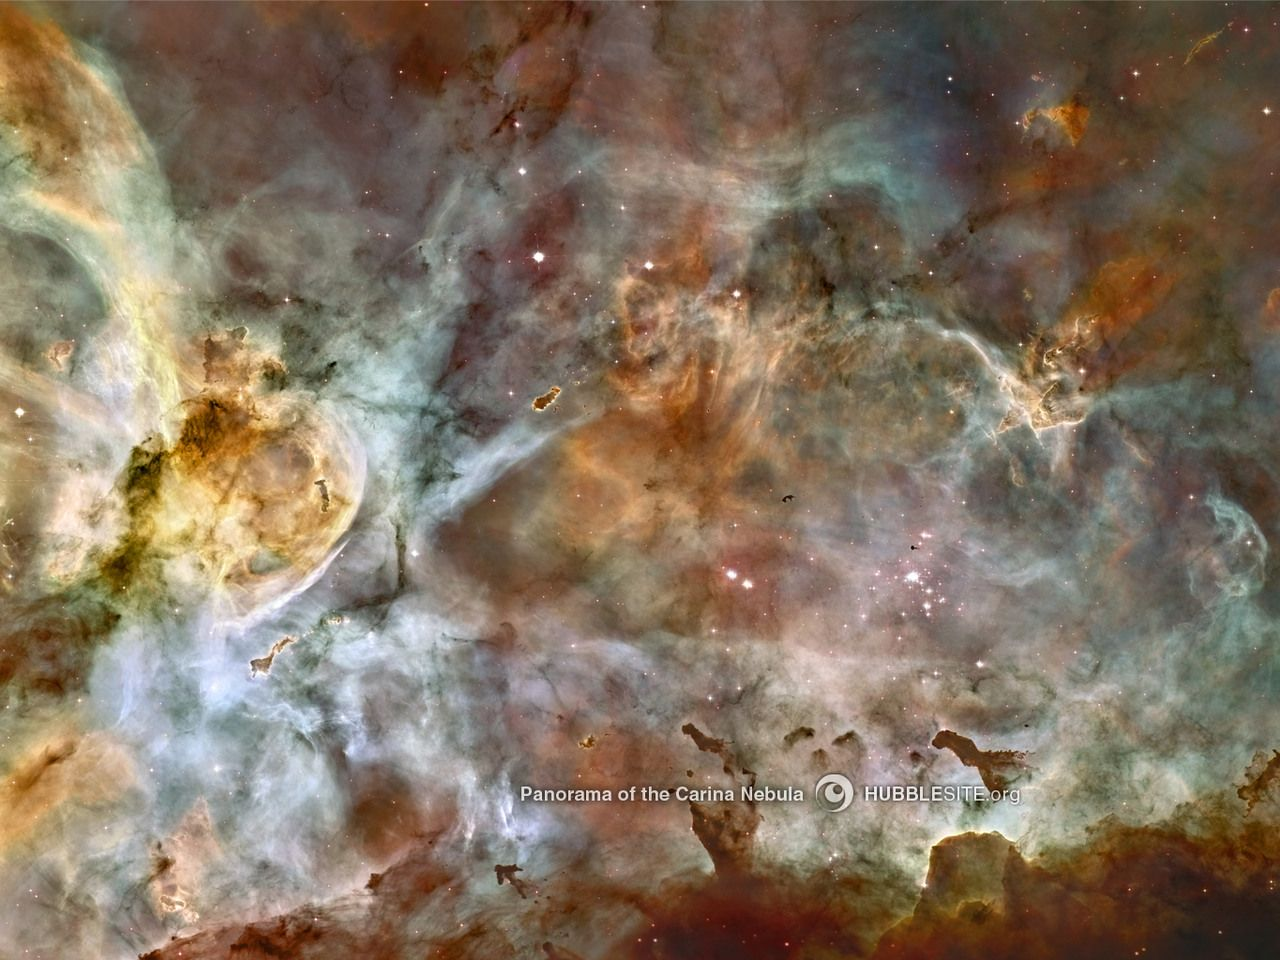 This image, released for Hubble's 17th anniversary, shows a region of star birth and death in the Carina Nebula. The nebula contains at least a dozen brilliant stars that are 50 to 100 times the mass of our Sun.